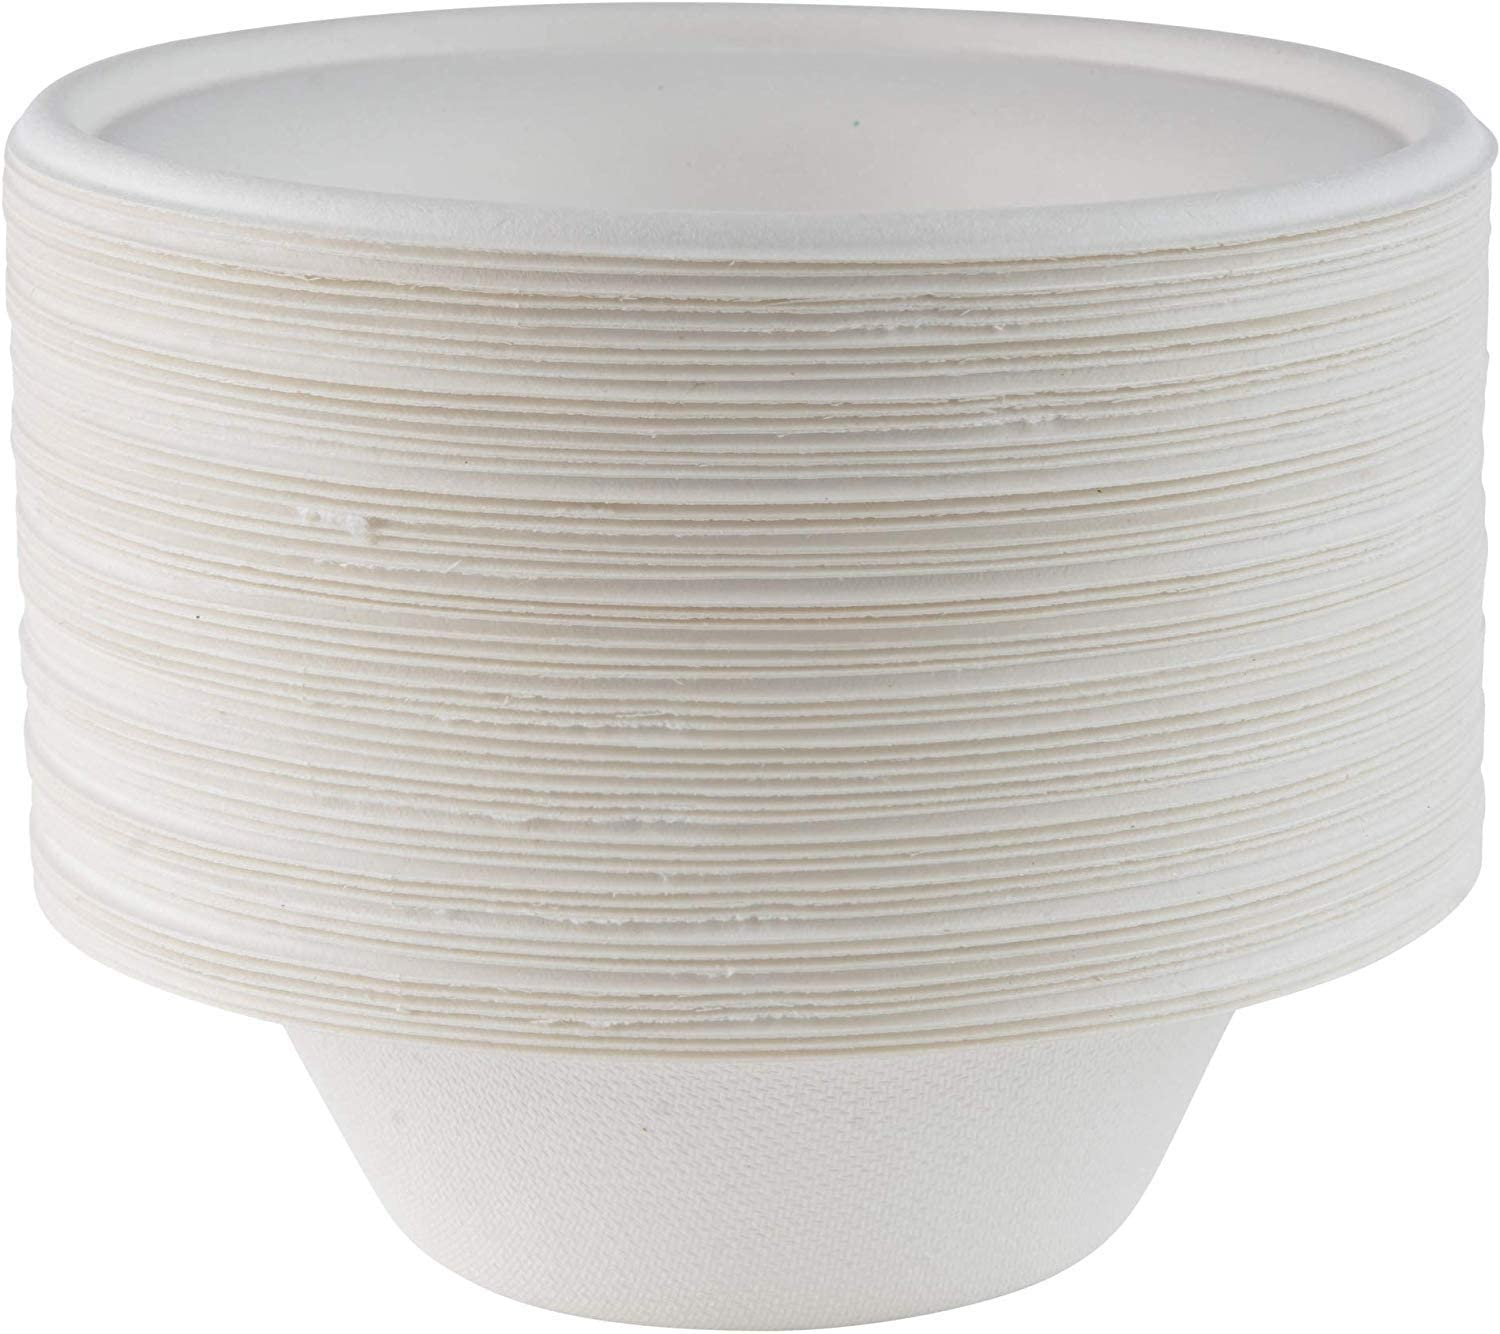 WhopperIndia Disposable Bowl 5 oz, Natural Compostable Biodegradable Sugarcane Paper Soup Bowls, Eco-Friendly, Microwavable and Leakproof Tableware for Hot and Cold Foods 50 Pcs